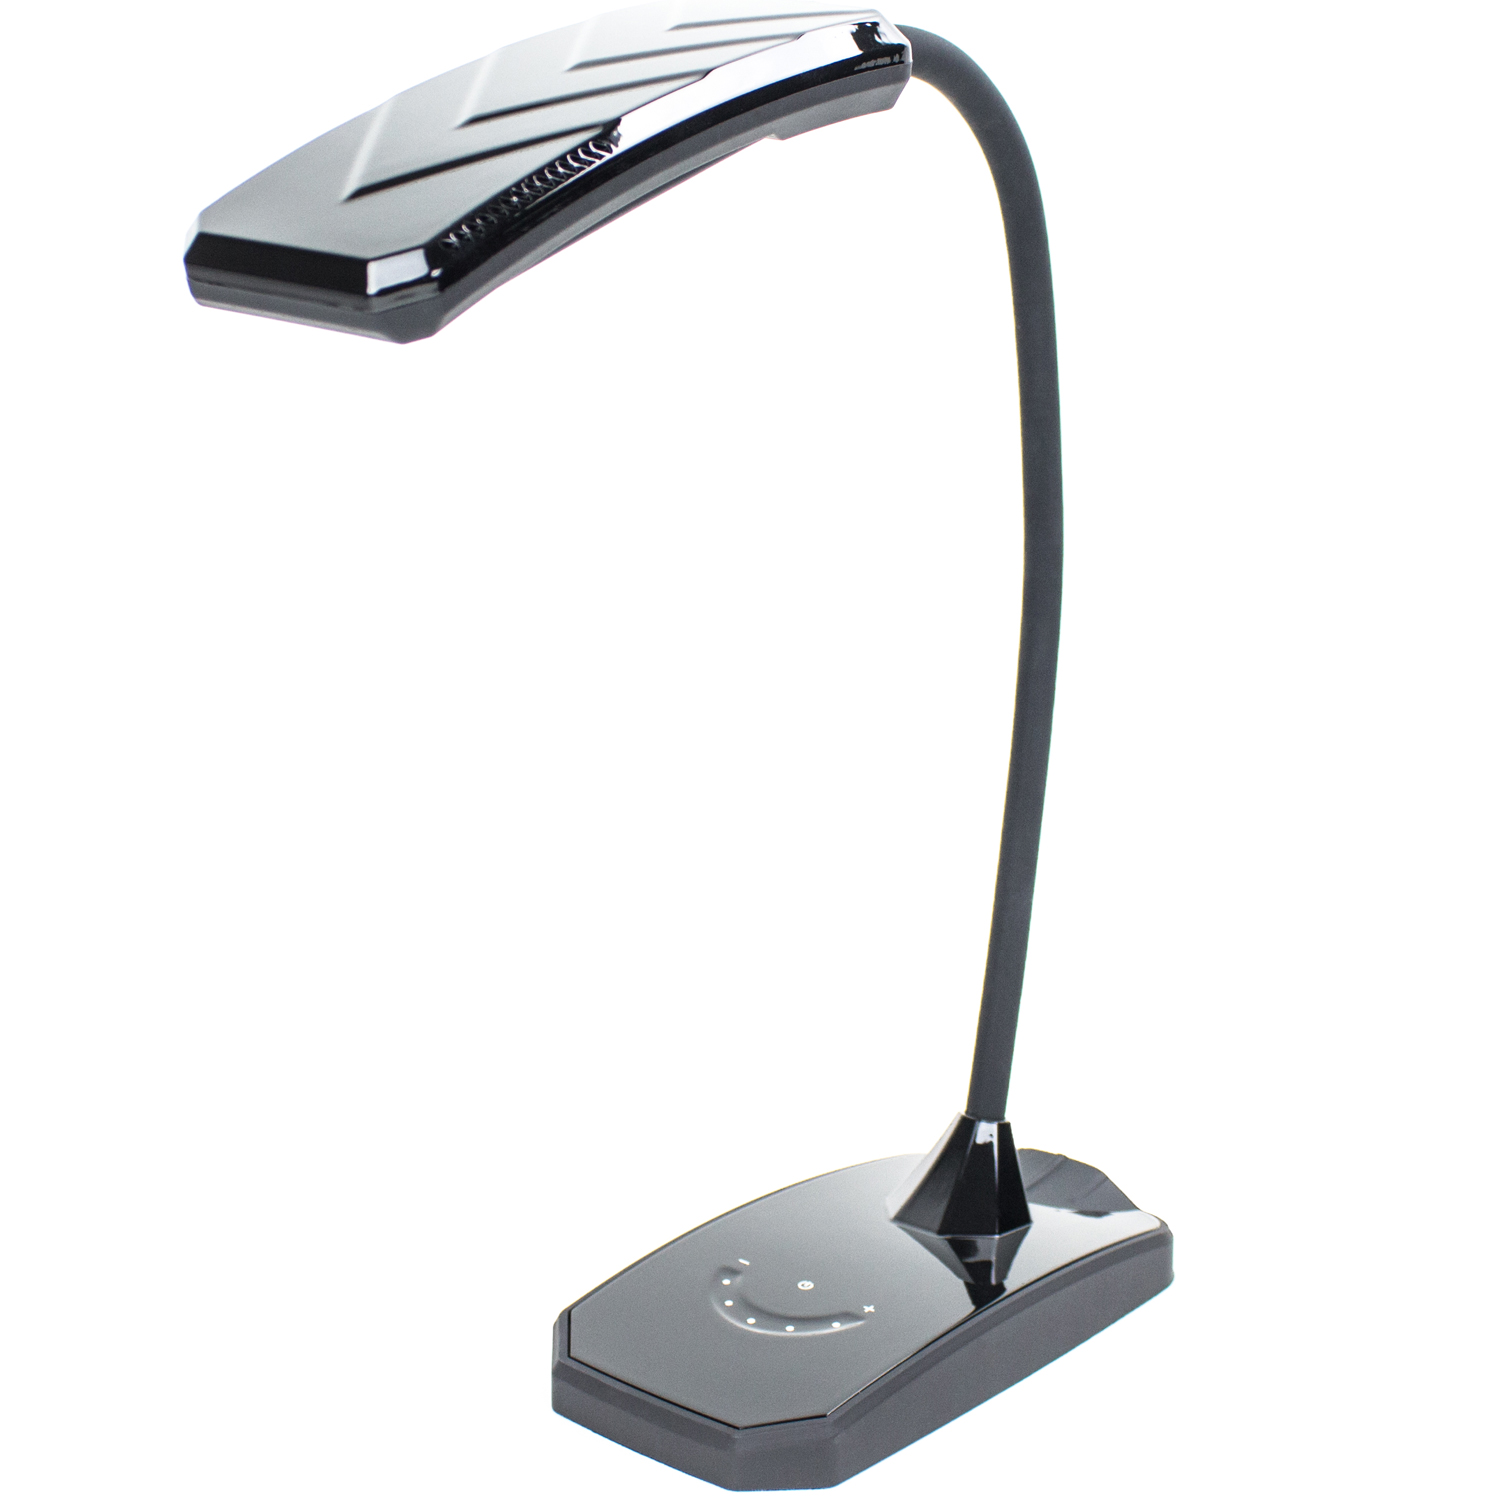 6W LED Desk Lamp w/ Dimmer and USB Charging Port Outlet - Newhouse Lighting